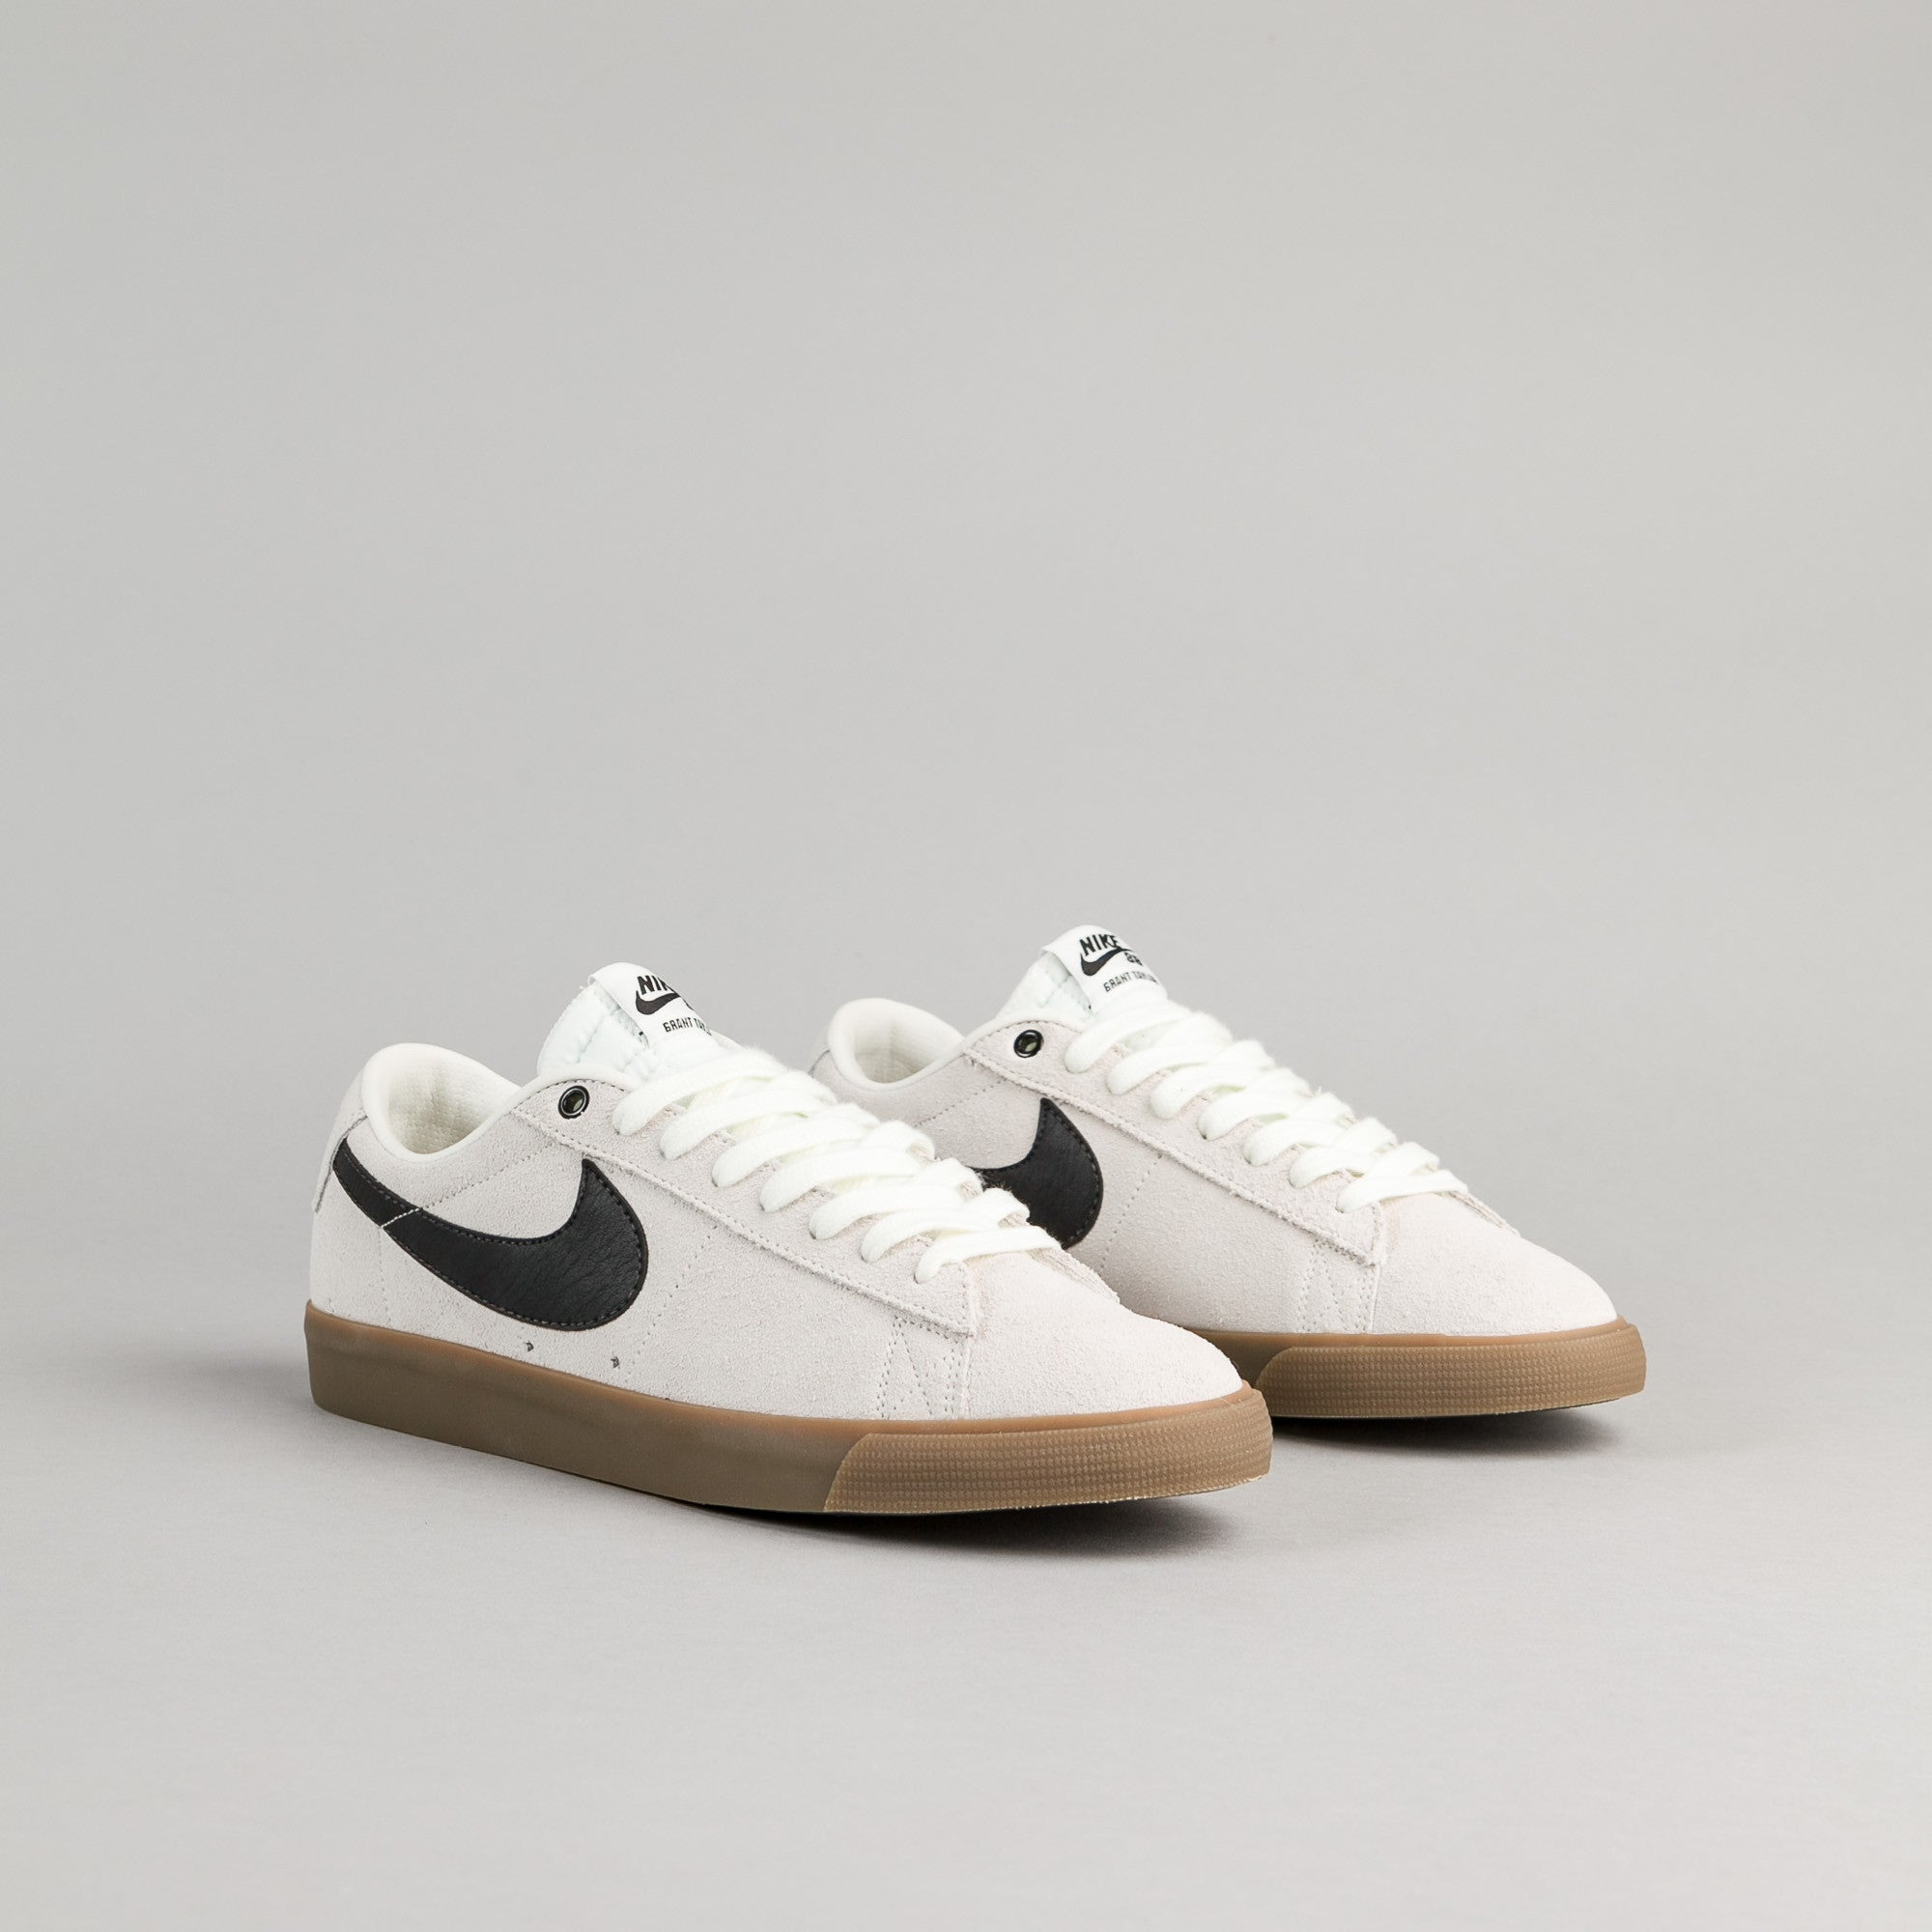 76685681aab53 ... promo code for nike sb blazer low gt shoes ivory black gum light brown  0f4b9 729d9